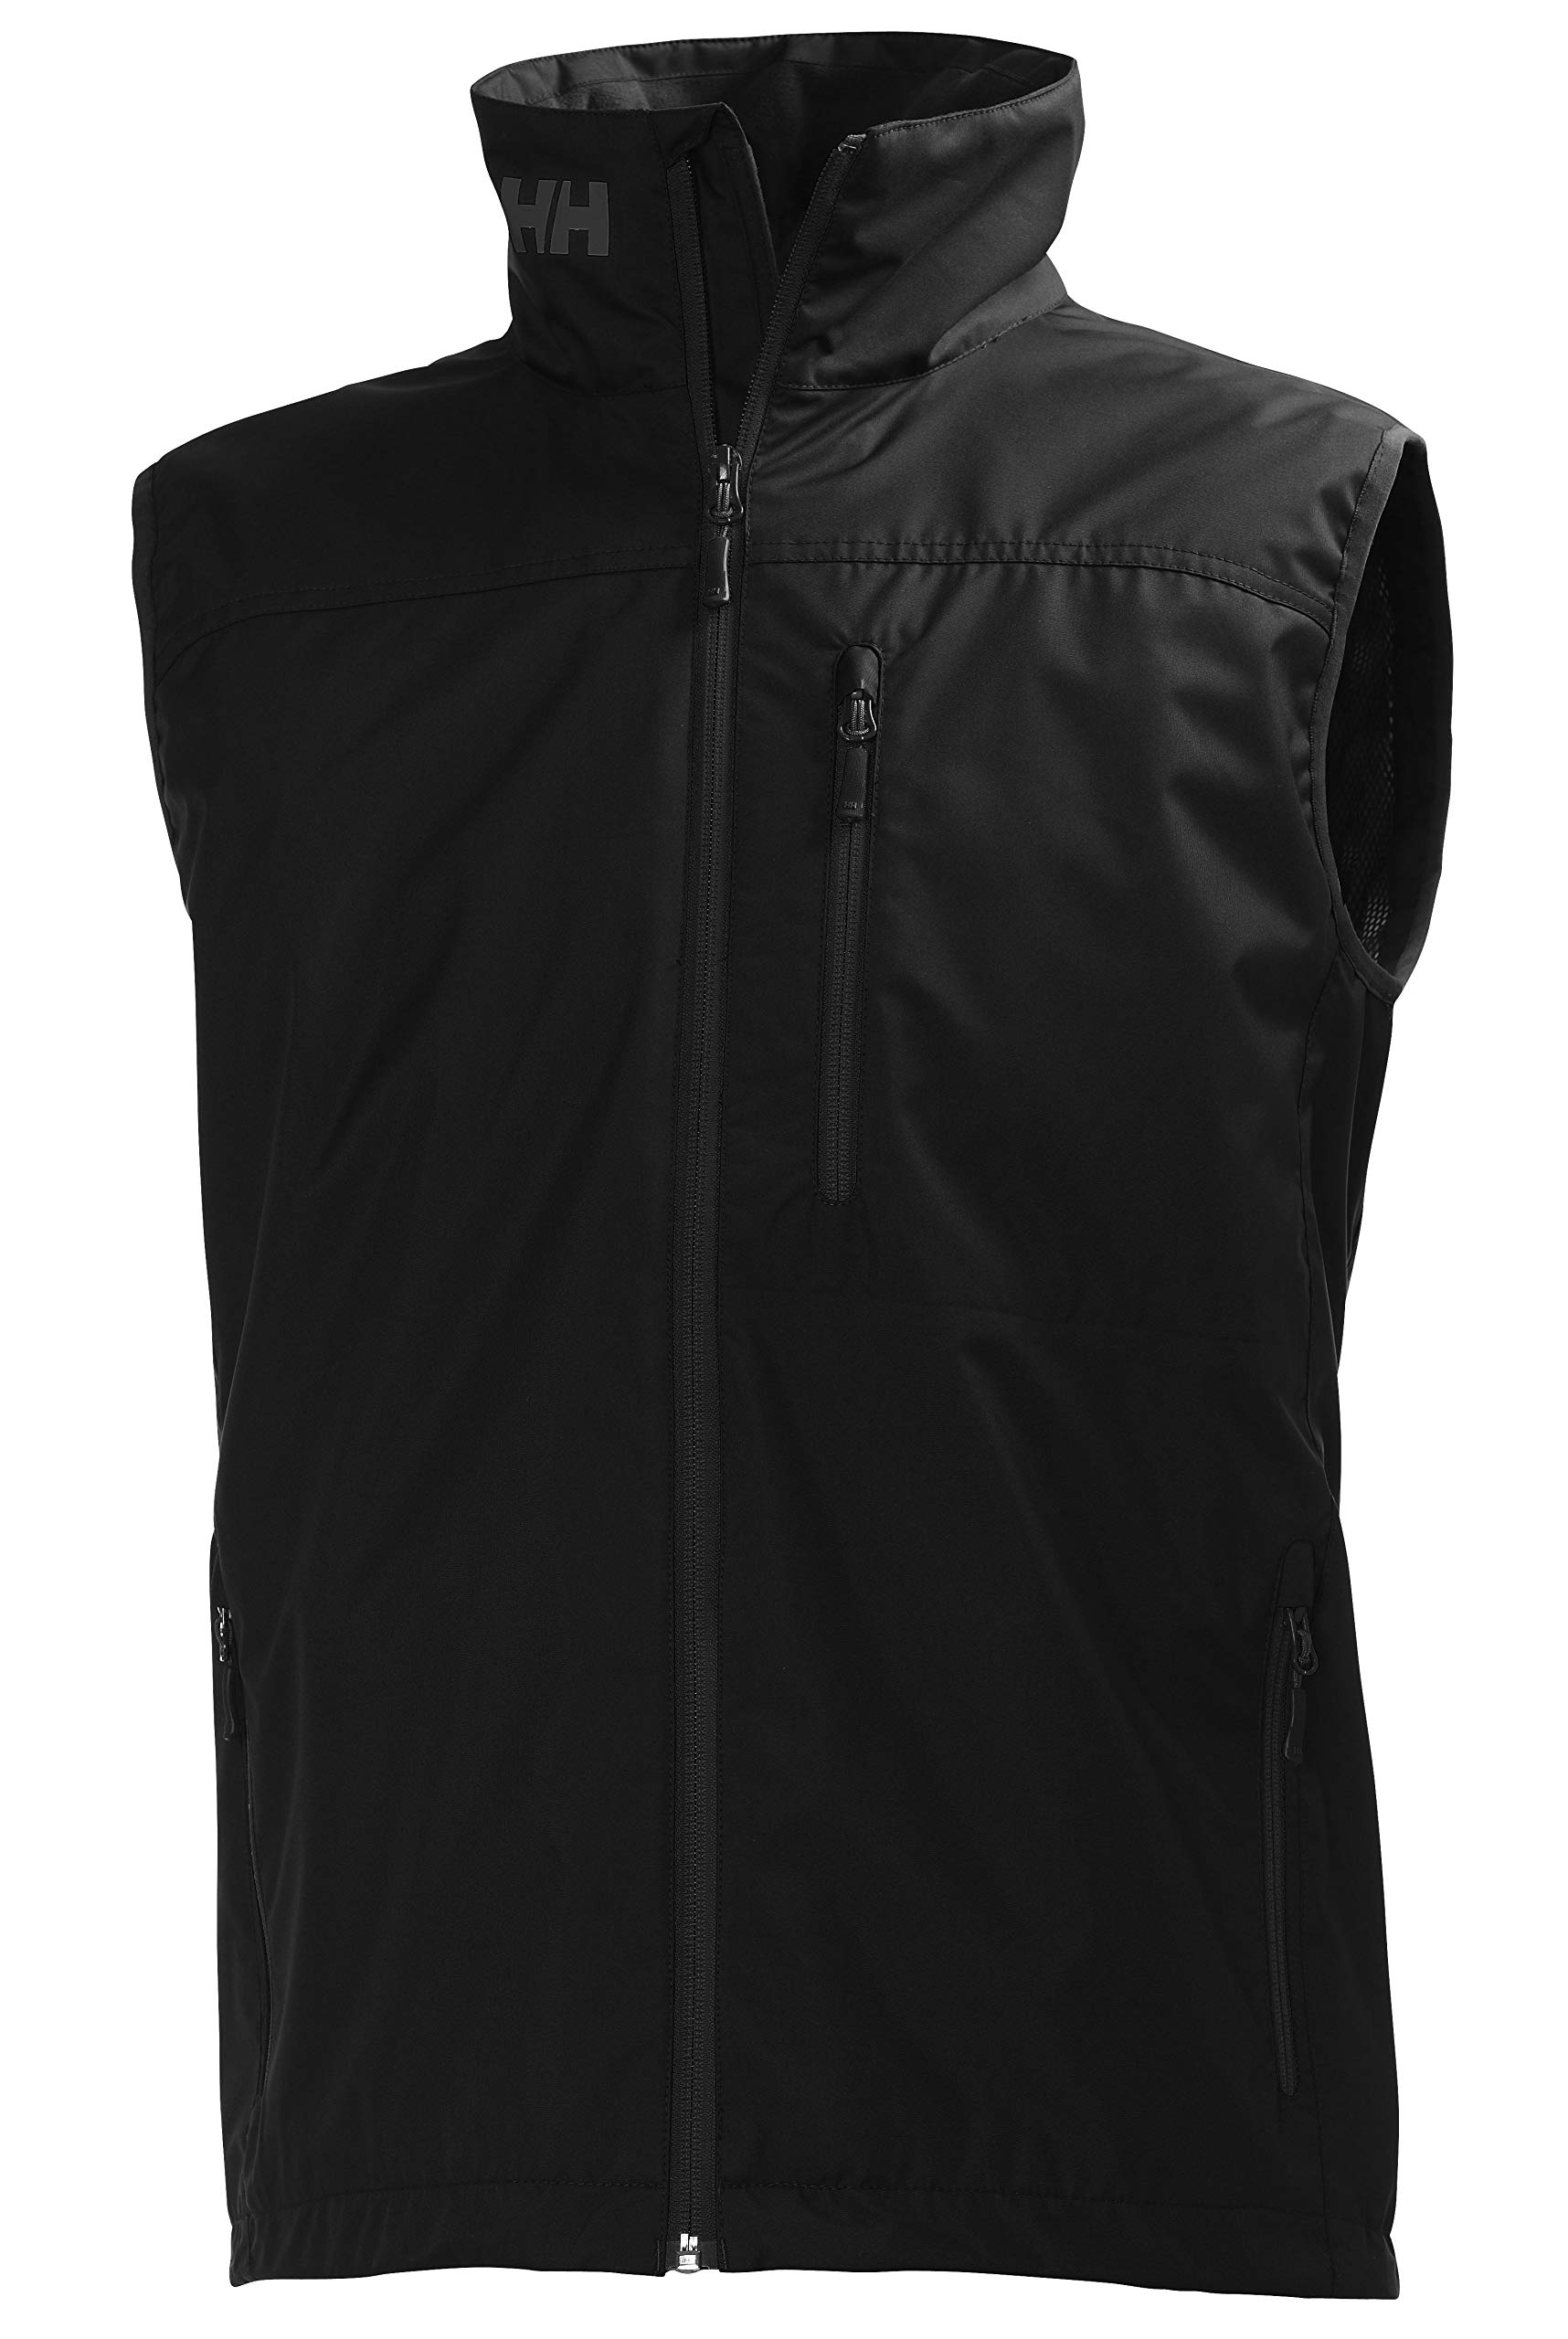 Helly Hansen Men's Crew Vest Waterproof, Windproof, & Breathable Sailing Vest, 990 Black, X-Large by Helly Hansen